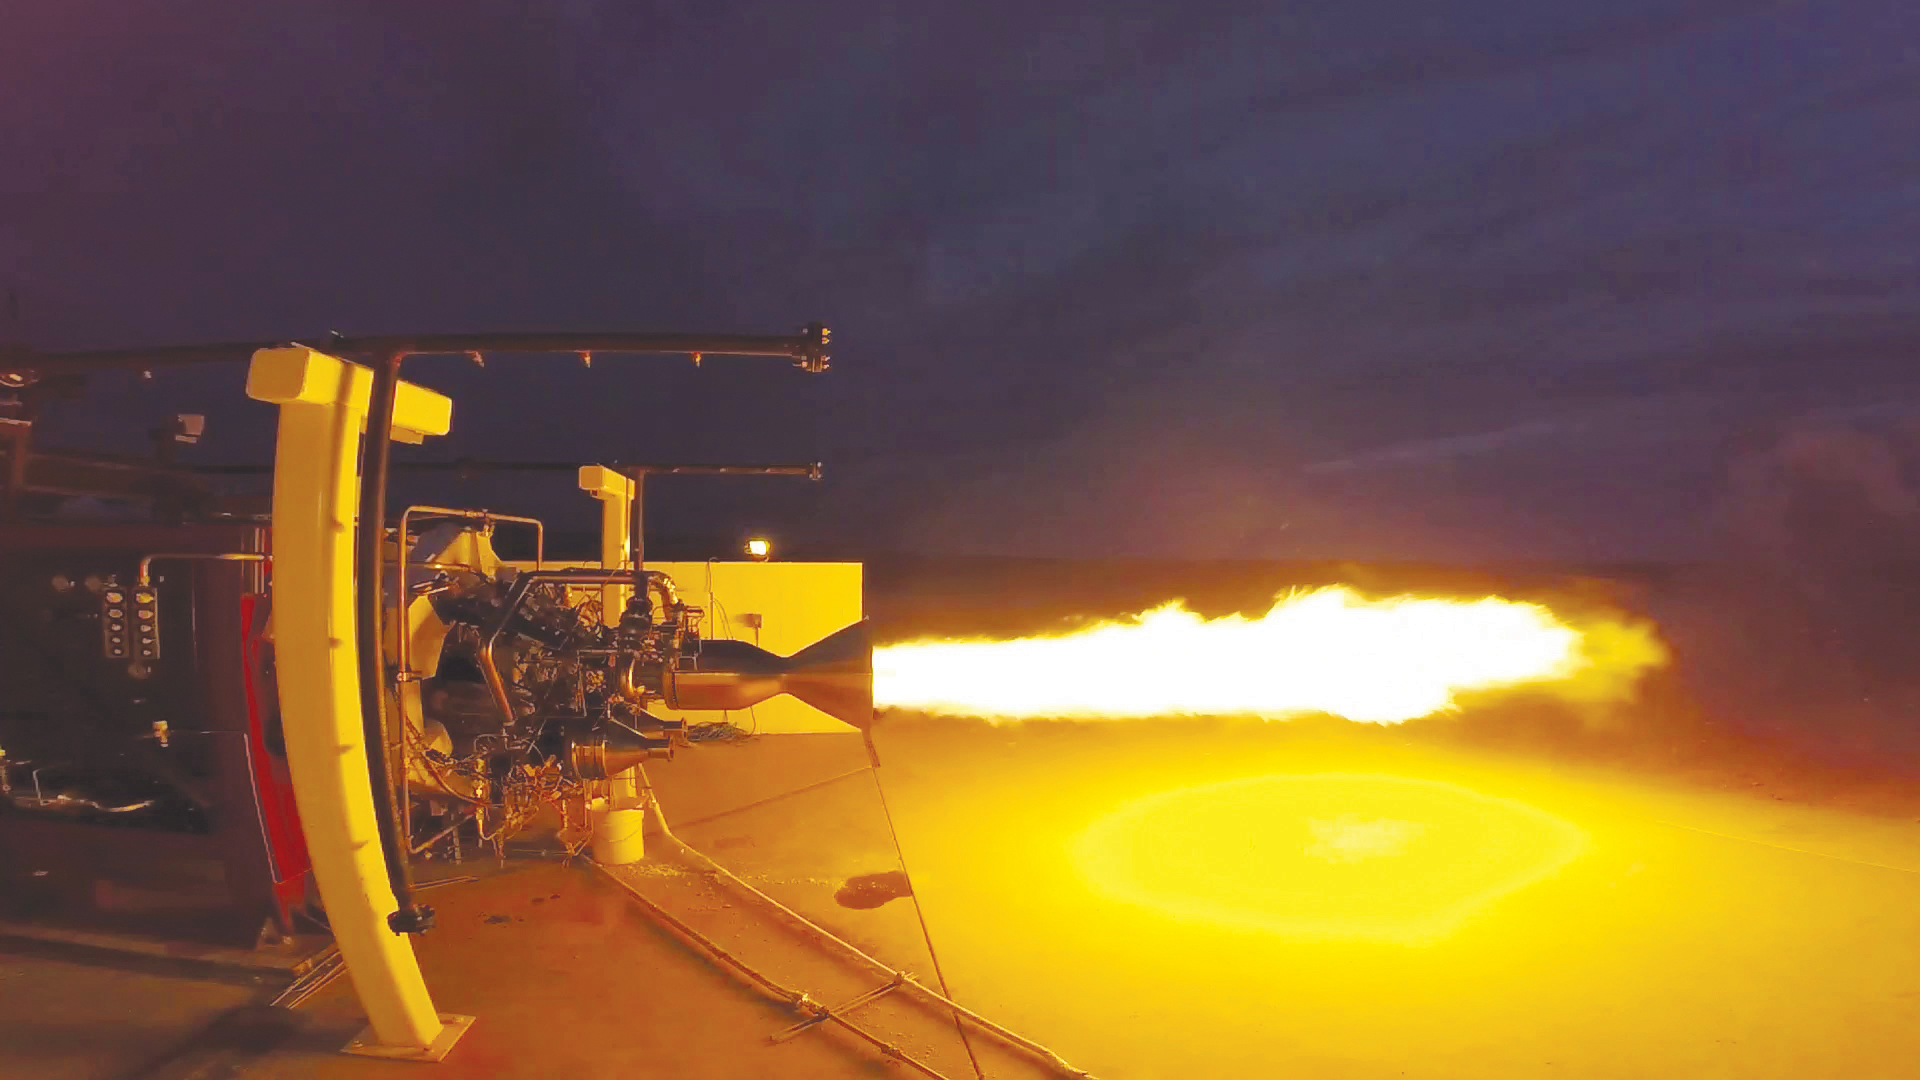 Virgin_Galactic_successful test firing of the NewtonThree main stage engine_Sep 2015